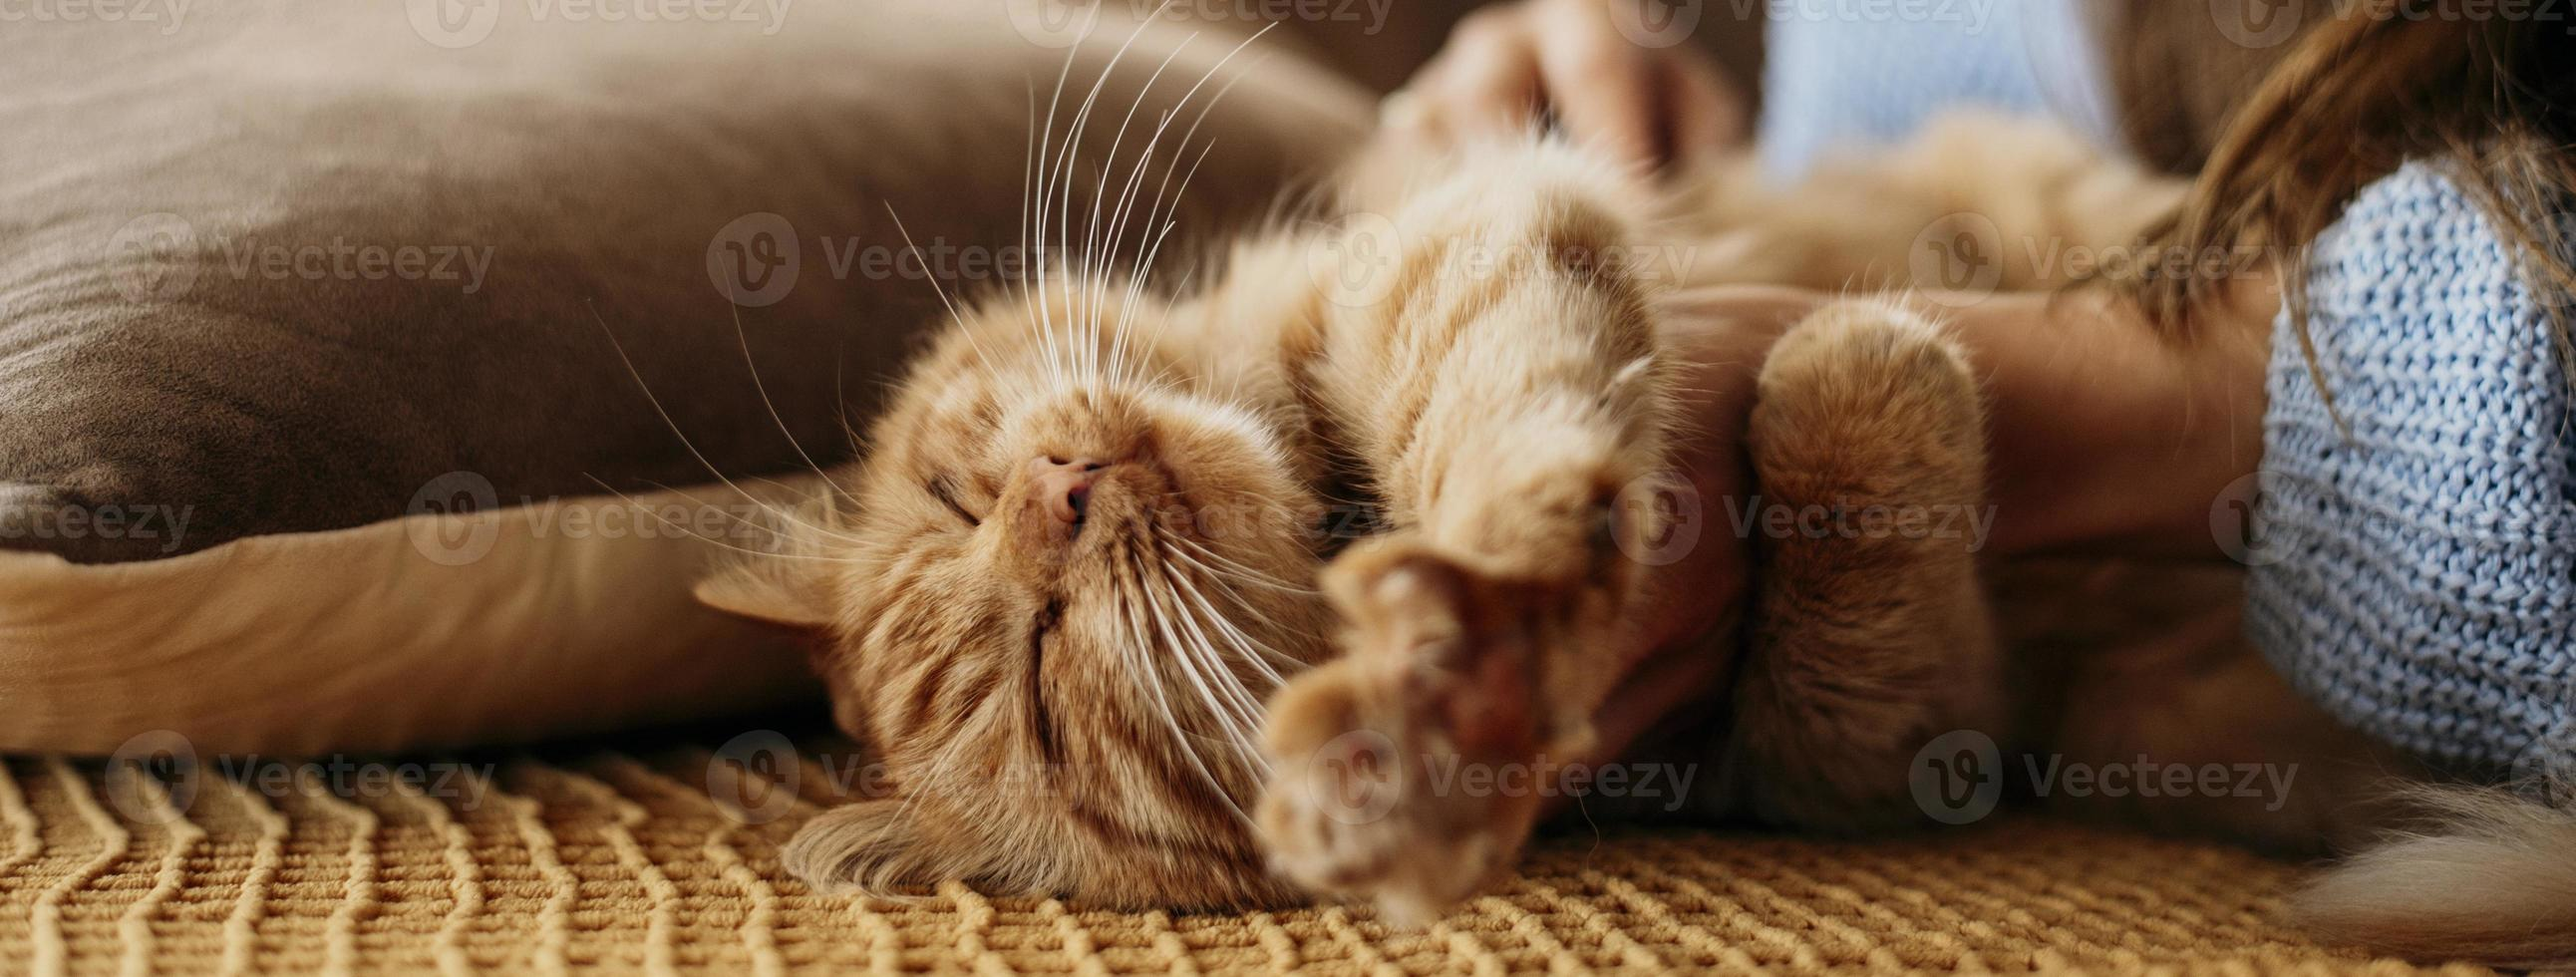 Owner petting adorable cat photo